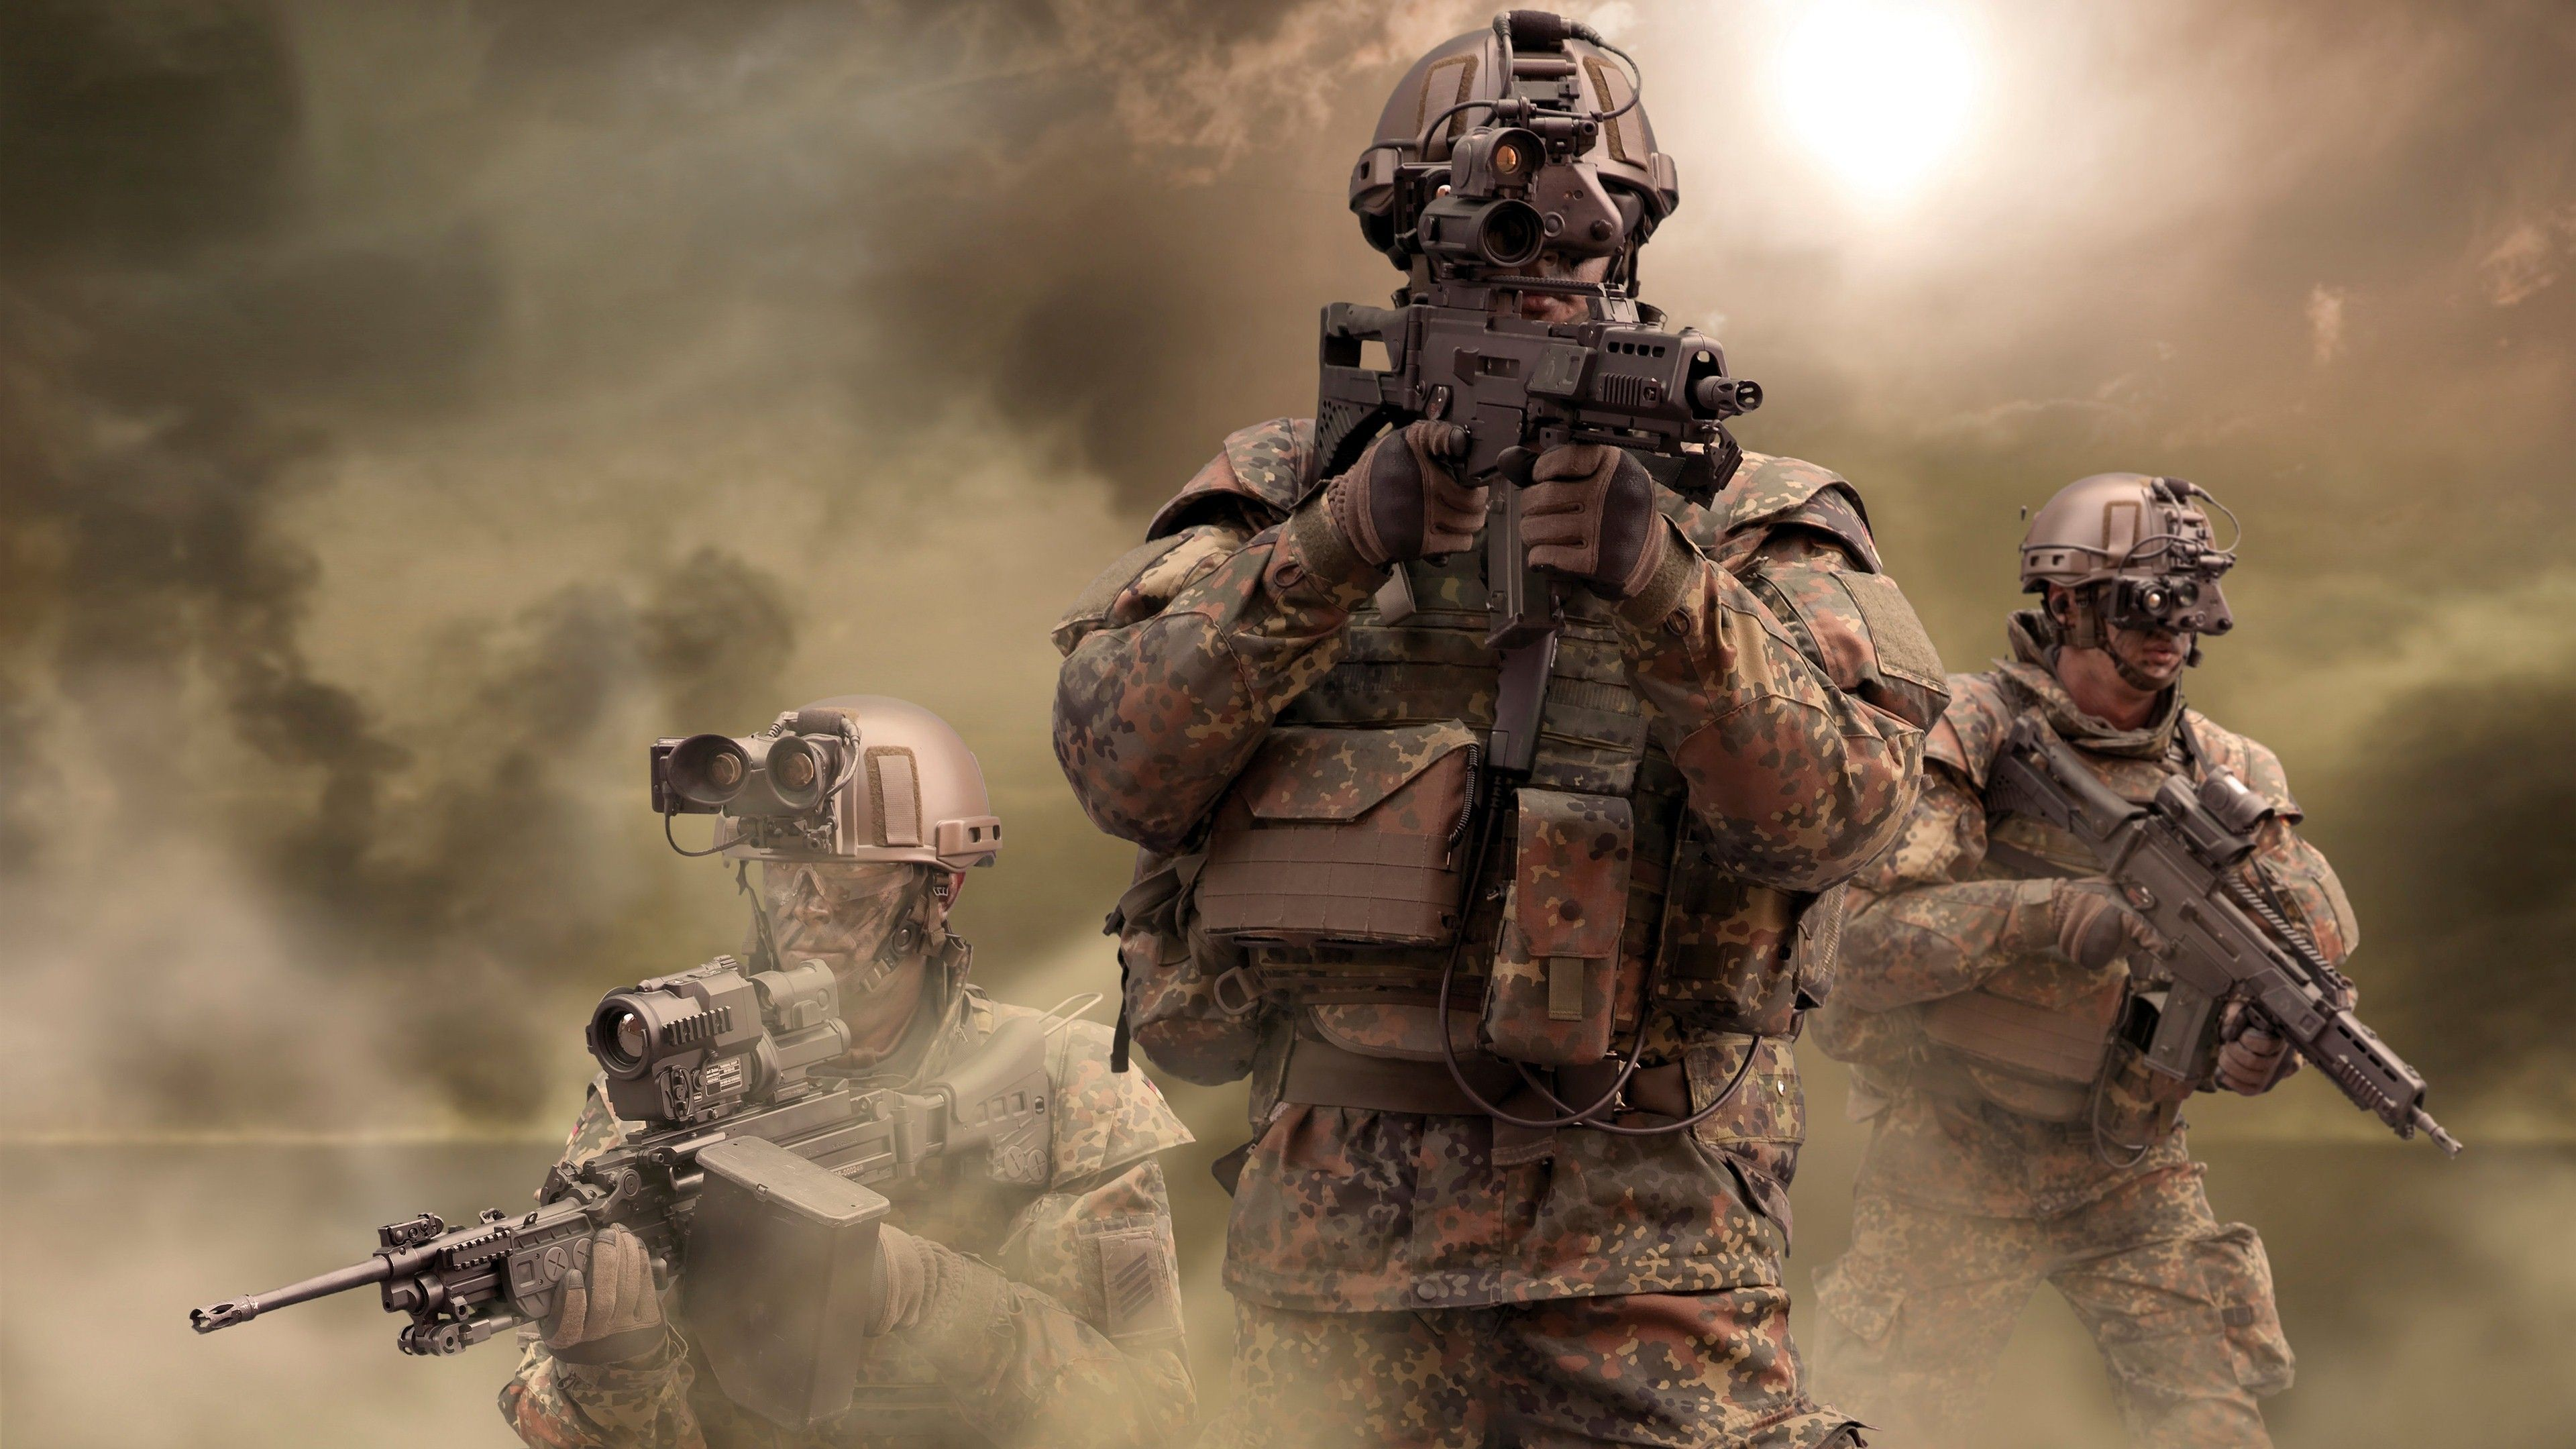 4K Military Wallpapers   Top 4K Military Backgrounds 3840x2160